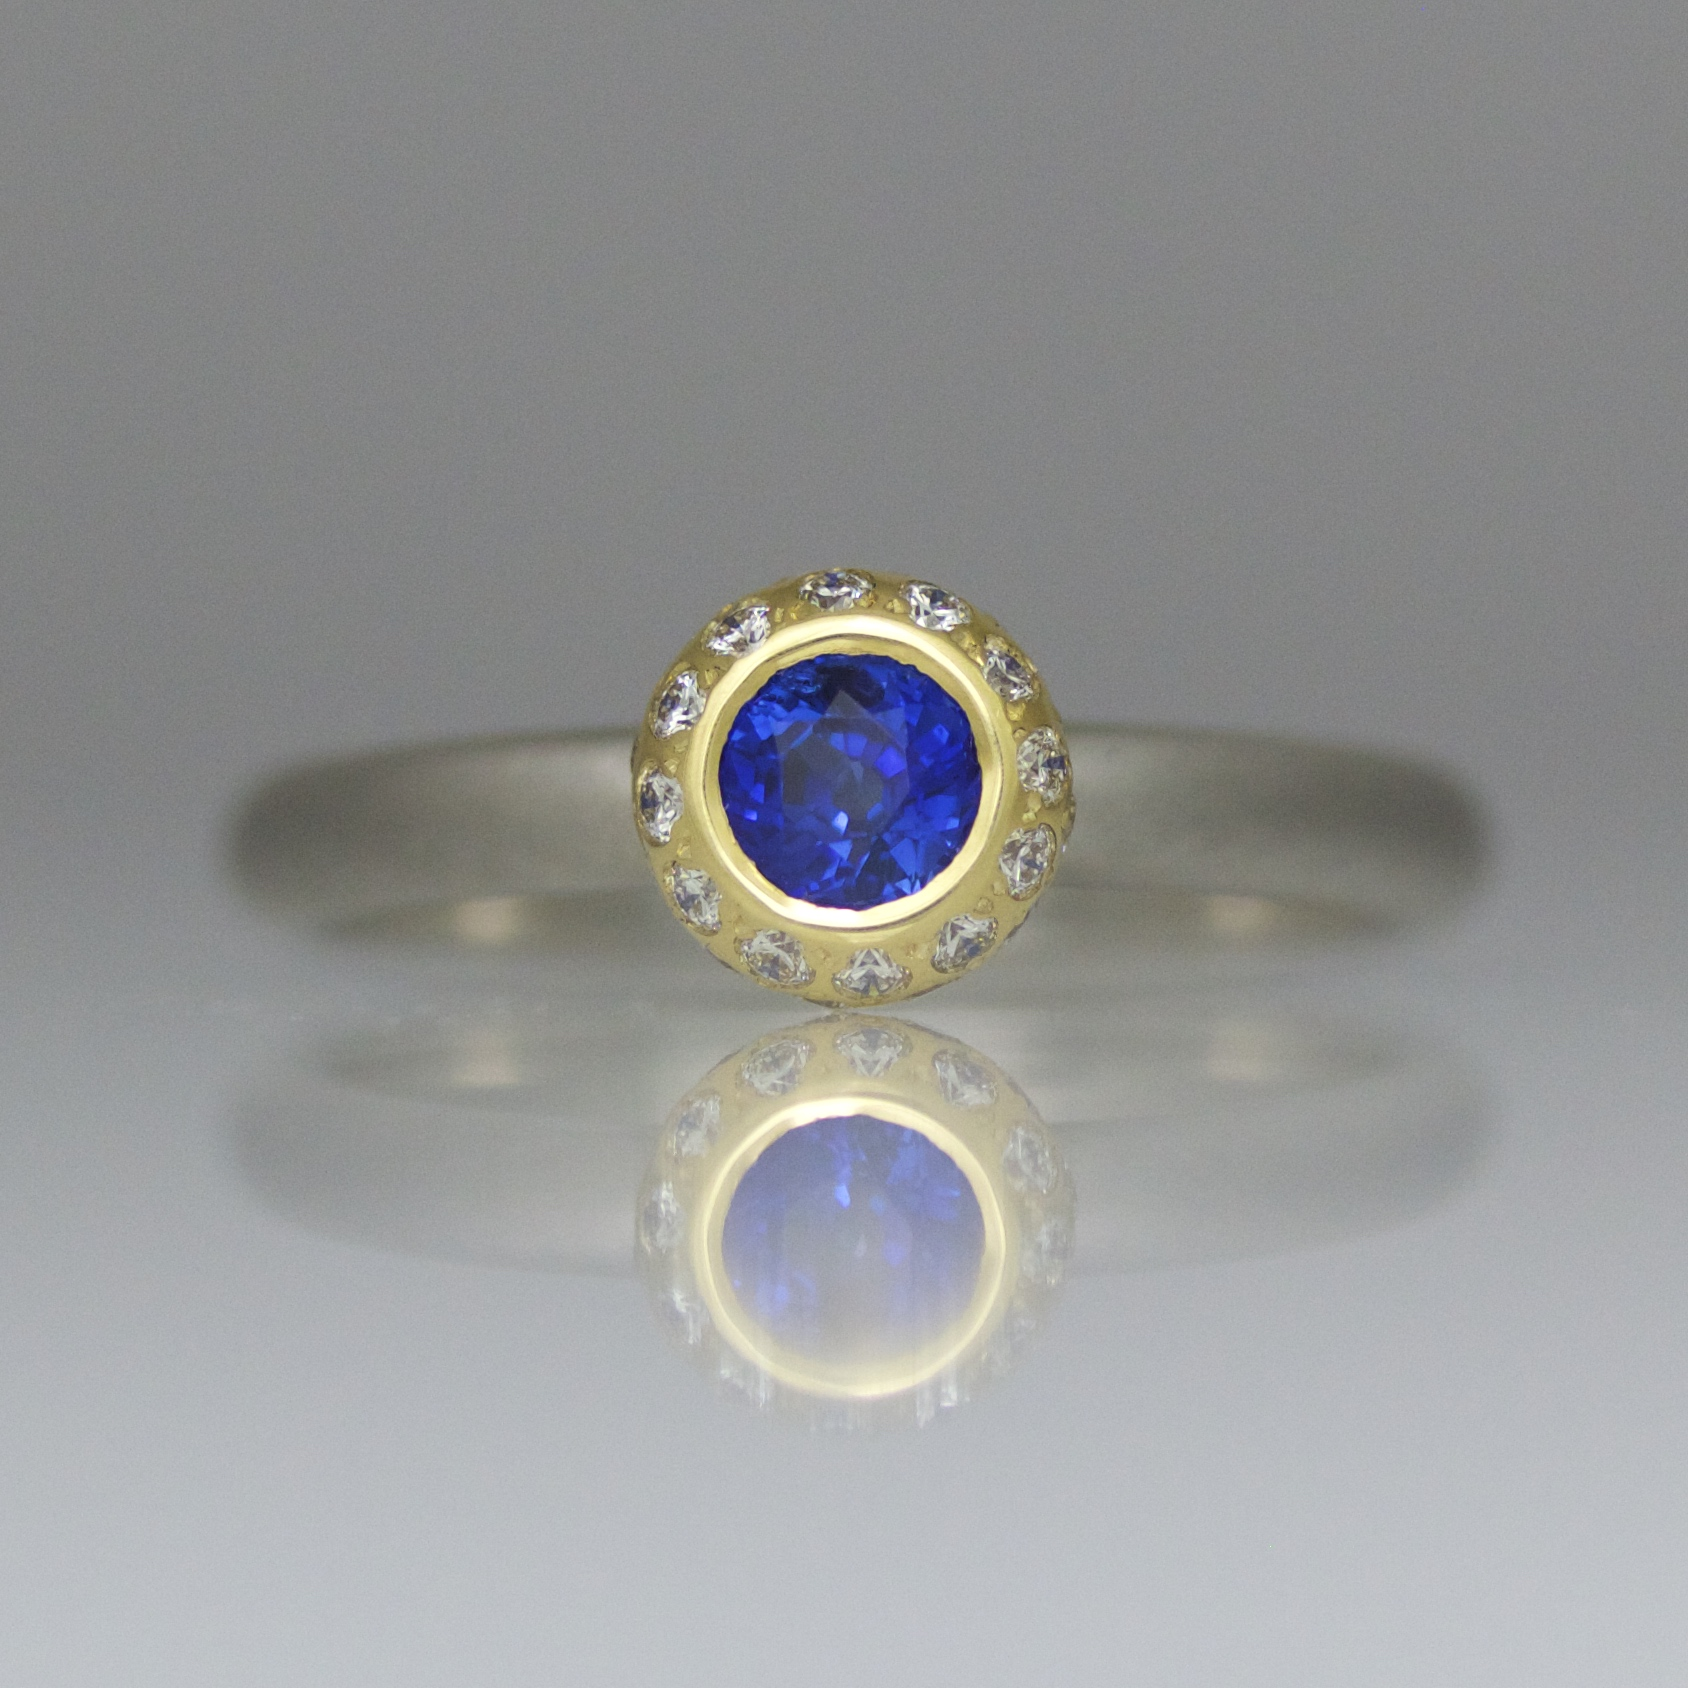 dress victorian rings weldon product stone jewellery img and weddings saffire matthew sapphire bands ladies ring antique engagement gemstone diamond multi